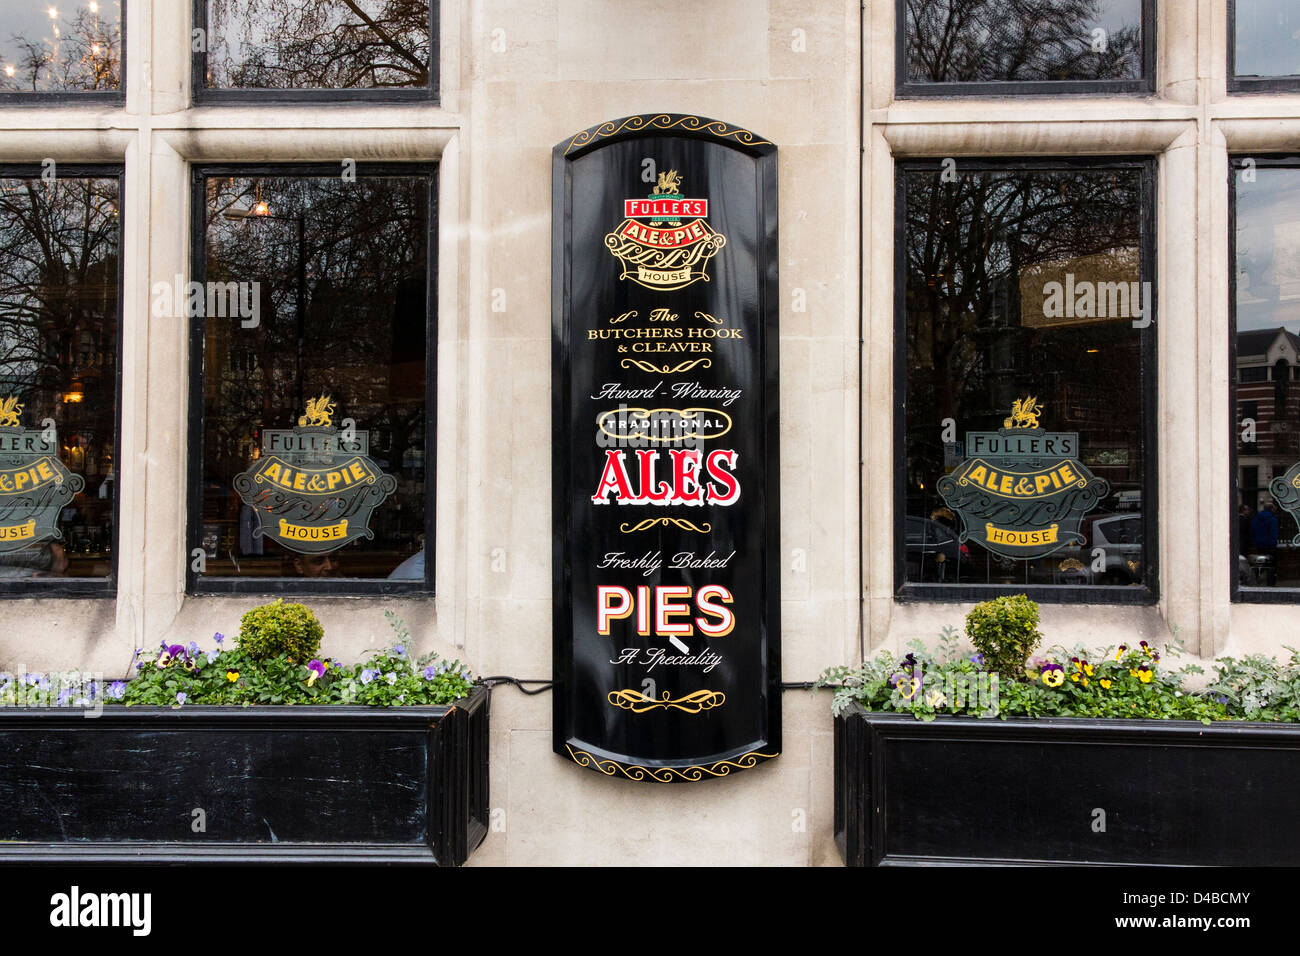 The Butchers Hook and Cleaver traditional London Ale and Pie pub in London, England - Stock Image